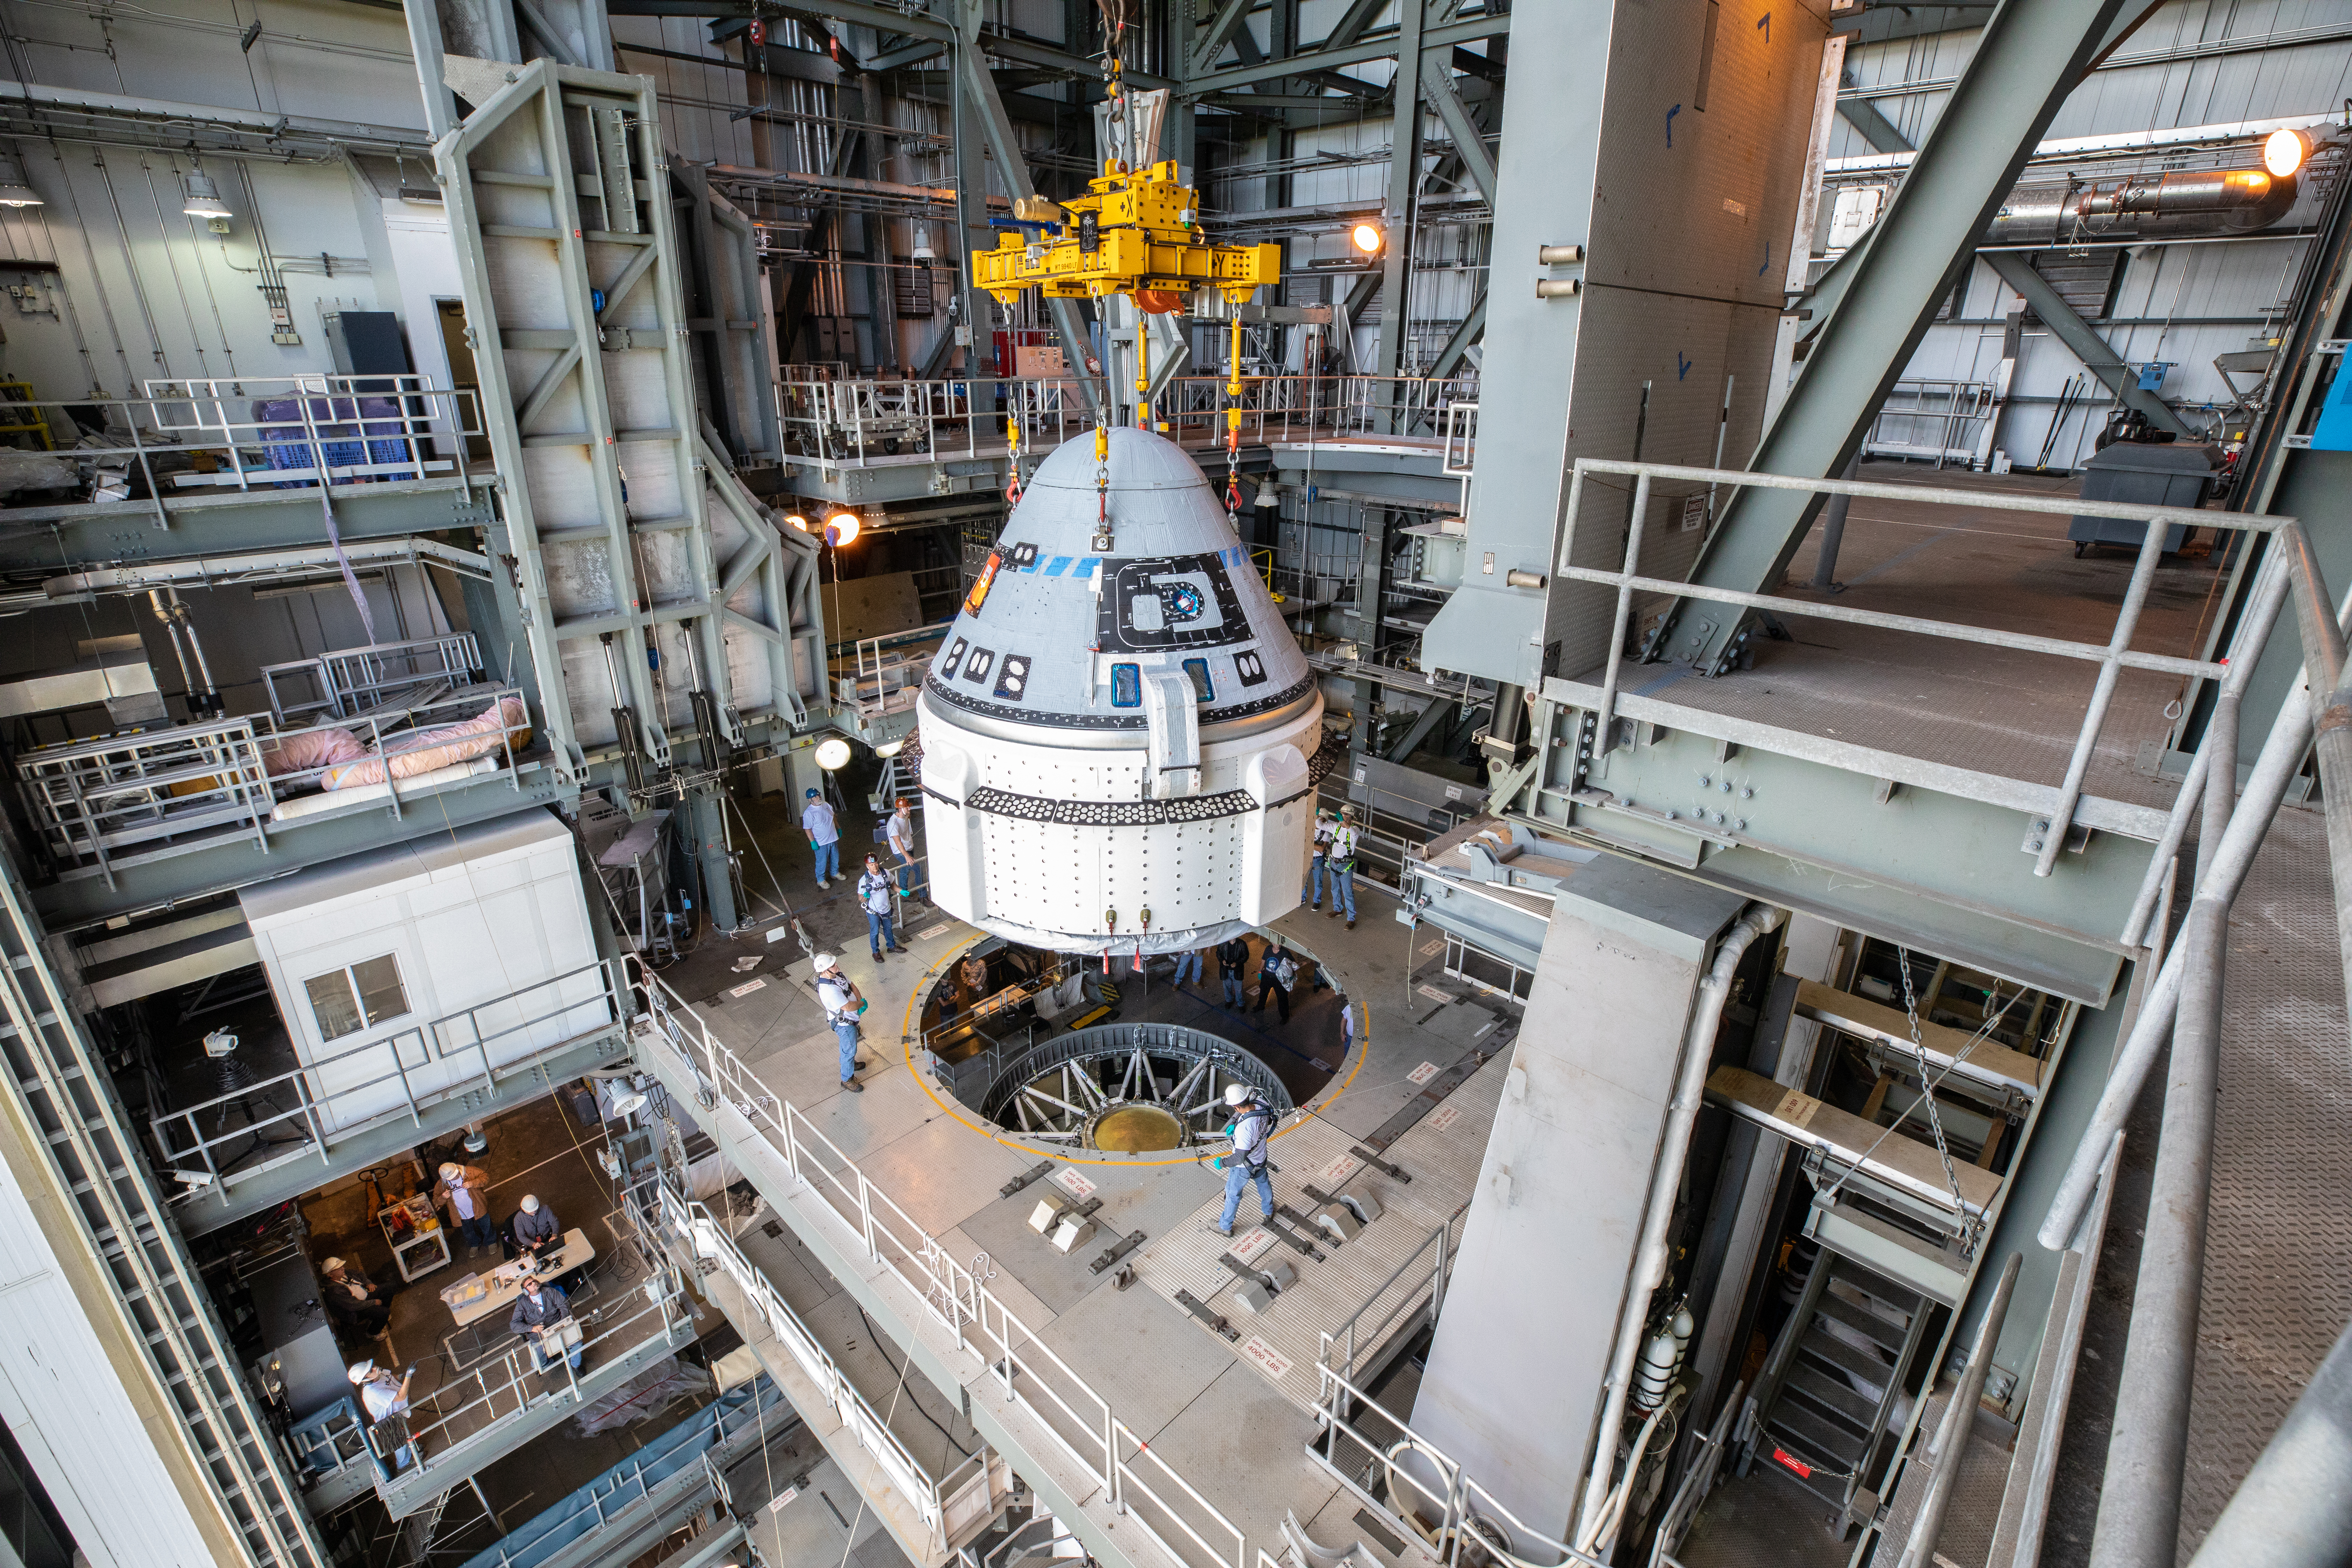 The other private space capsule: Boeing's CST-100 Starliner had a rocky unpiloted test last December, but could soon be flying with a crew. (Credit: NASA/Cory Huston)